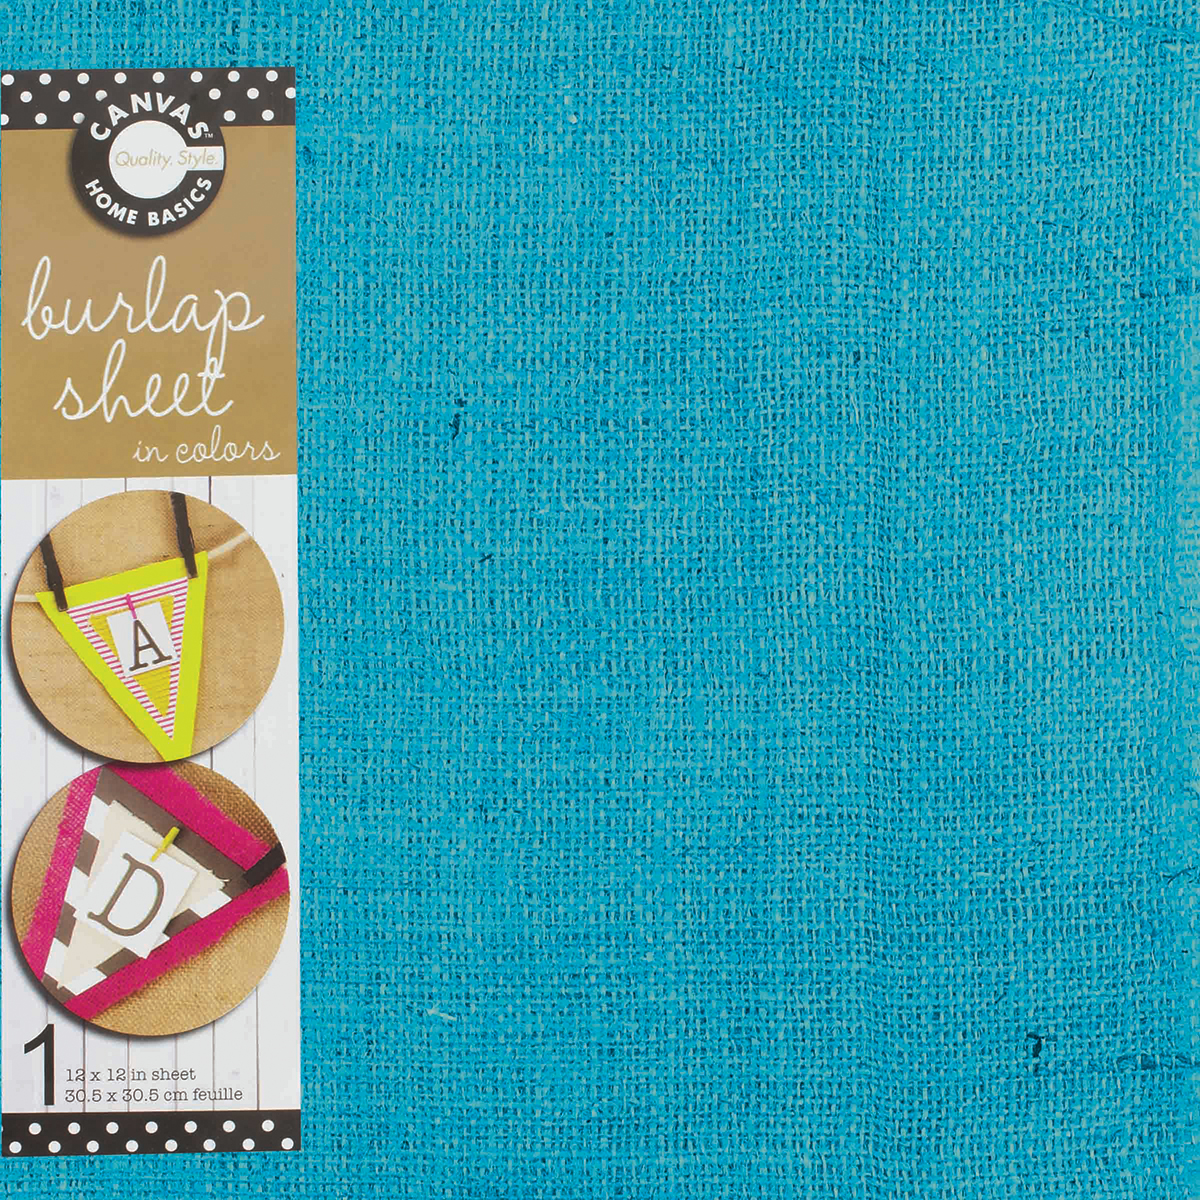 Canvas Unsewn Burlap Sheet Jute, 12-Inch by 12-Inch, Teal Multi-Colored